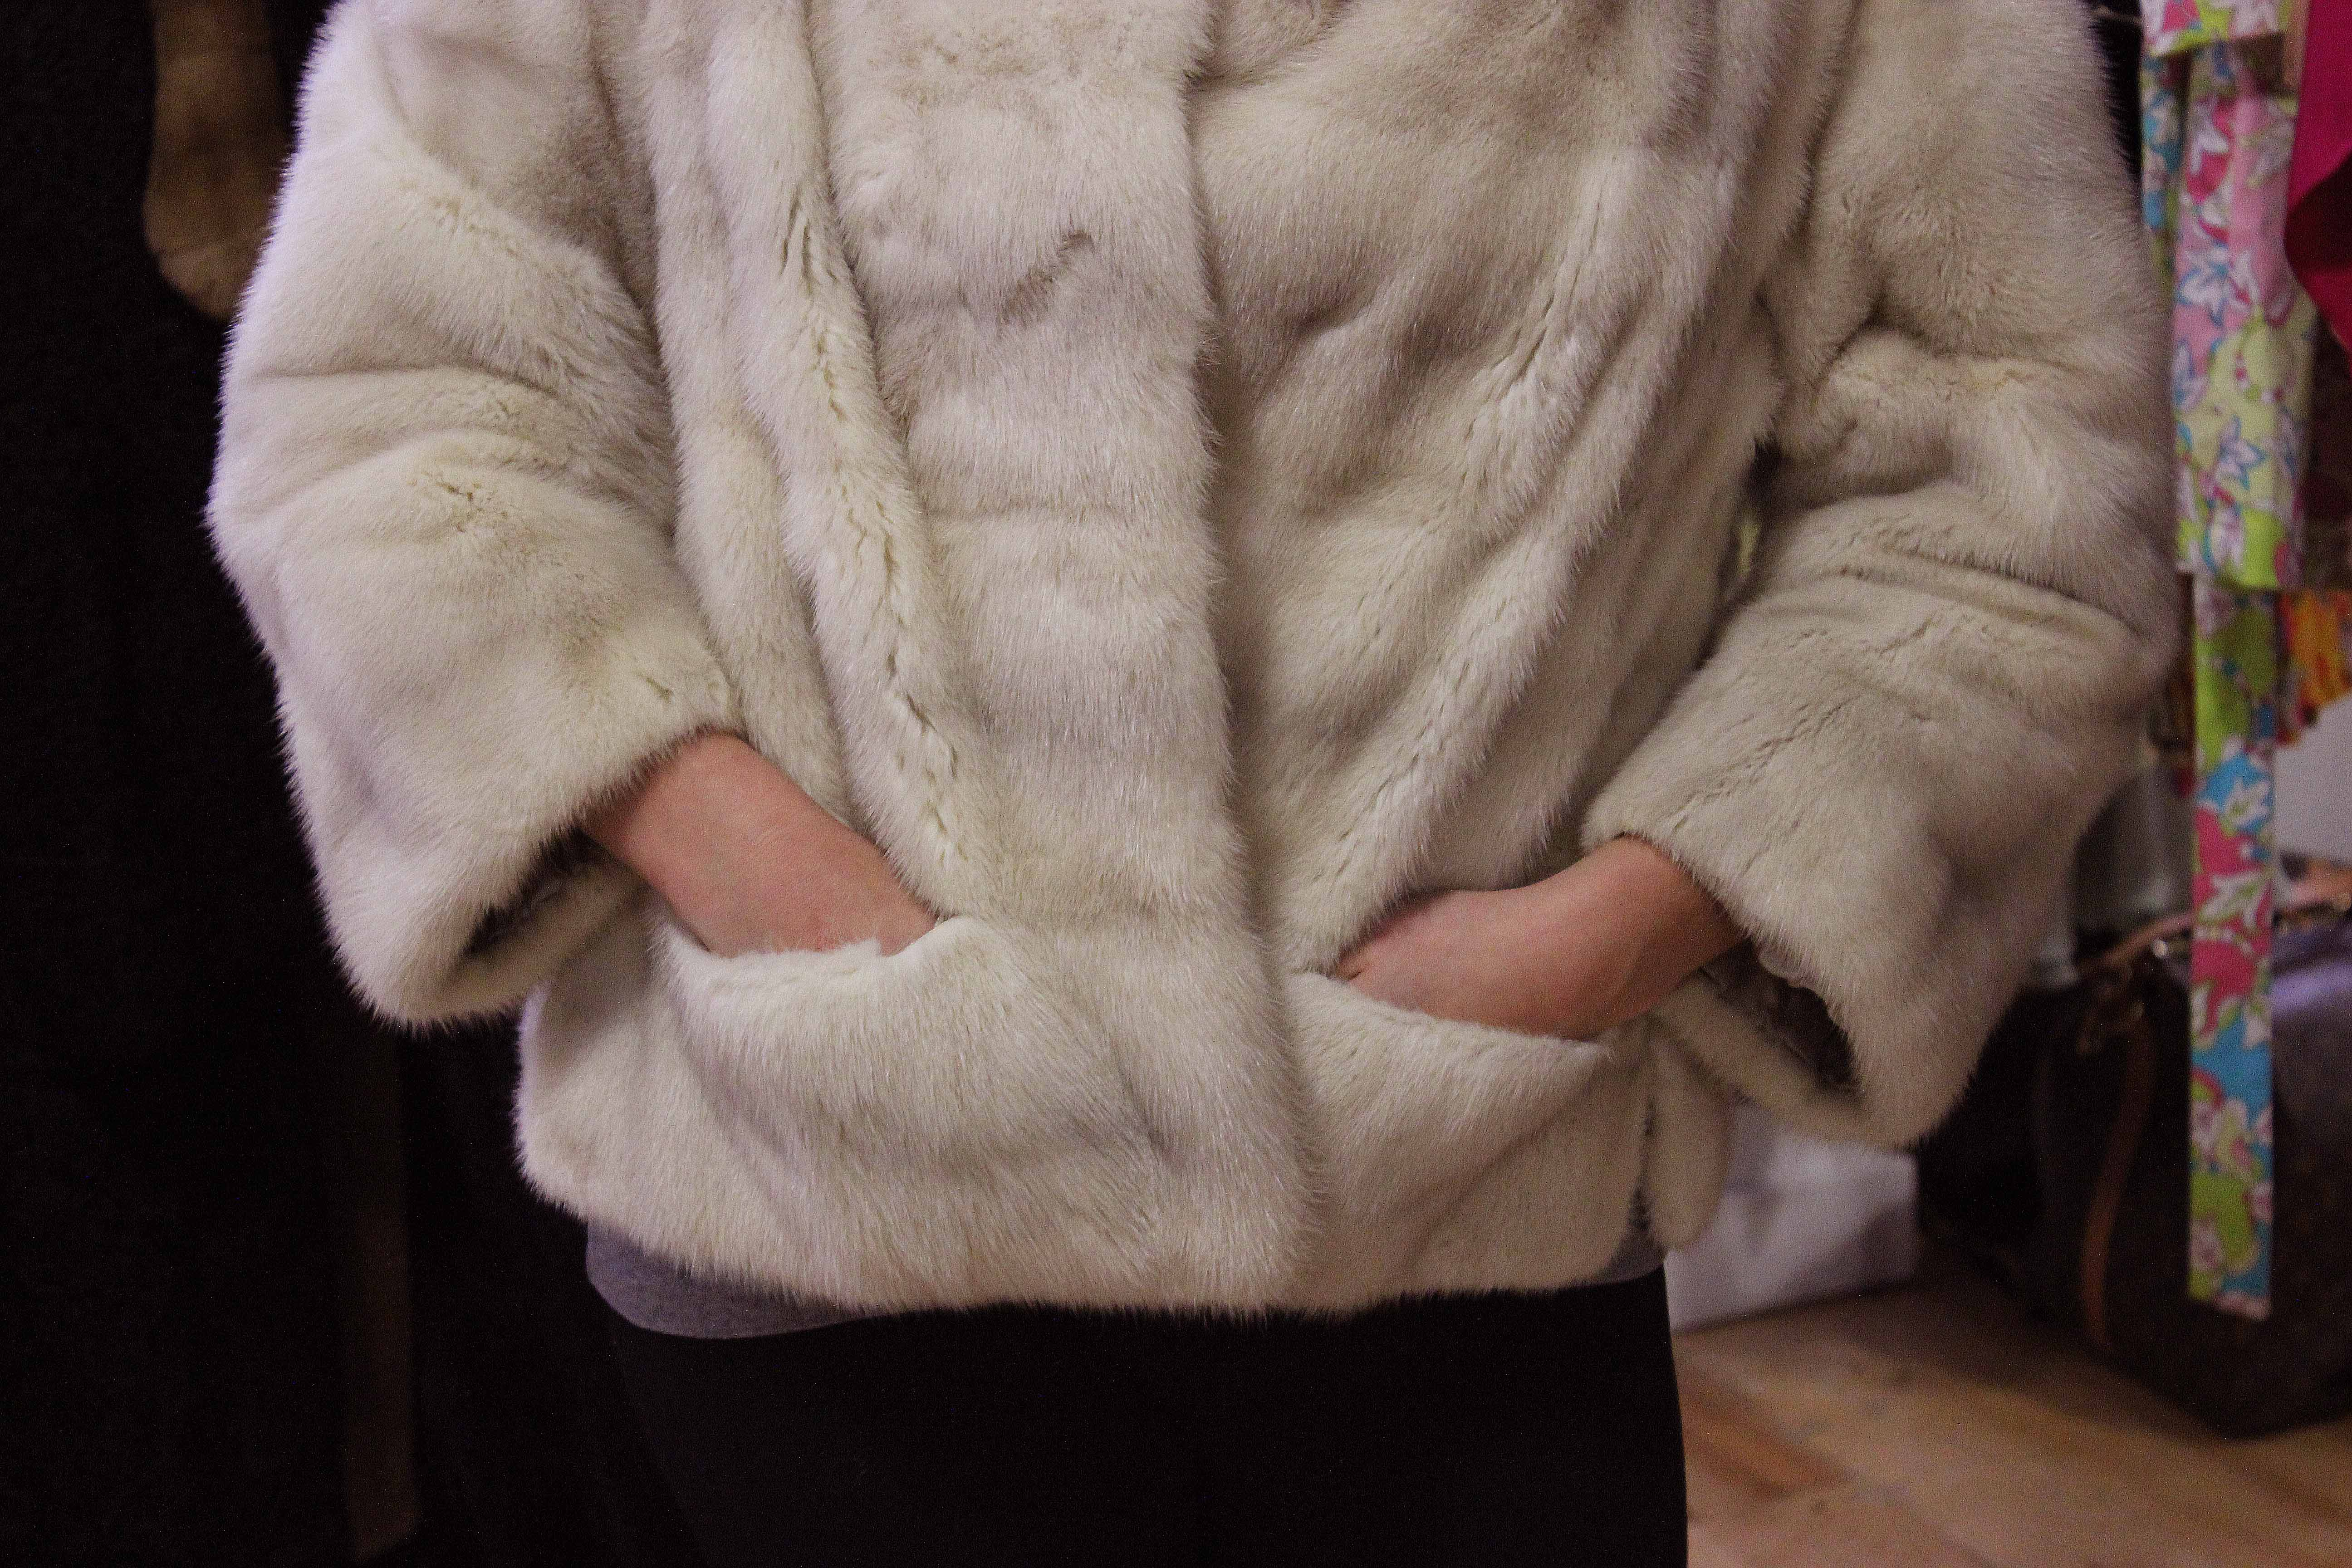 Vintage Fur Coat. Model - Katie Ryan. Photo by Kate Frankenberg.